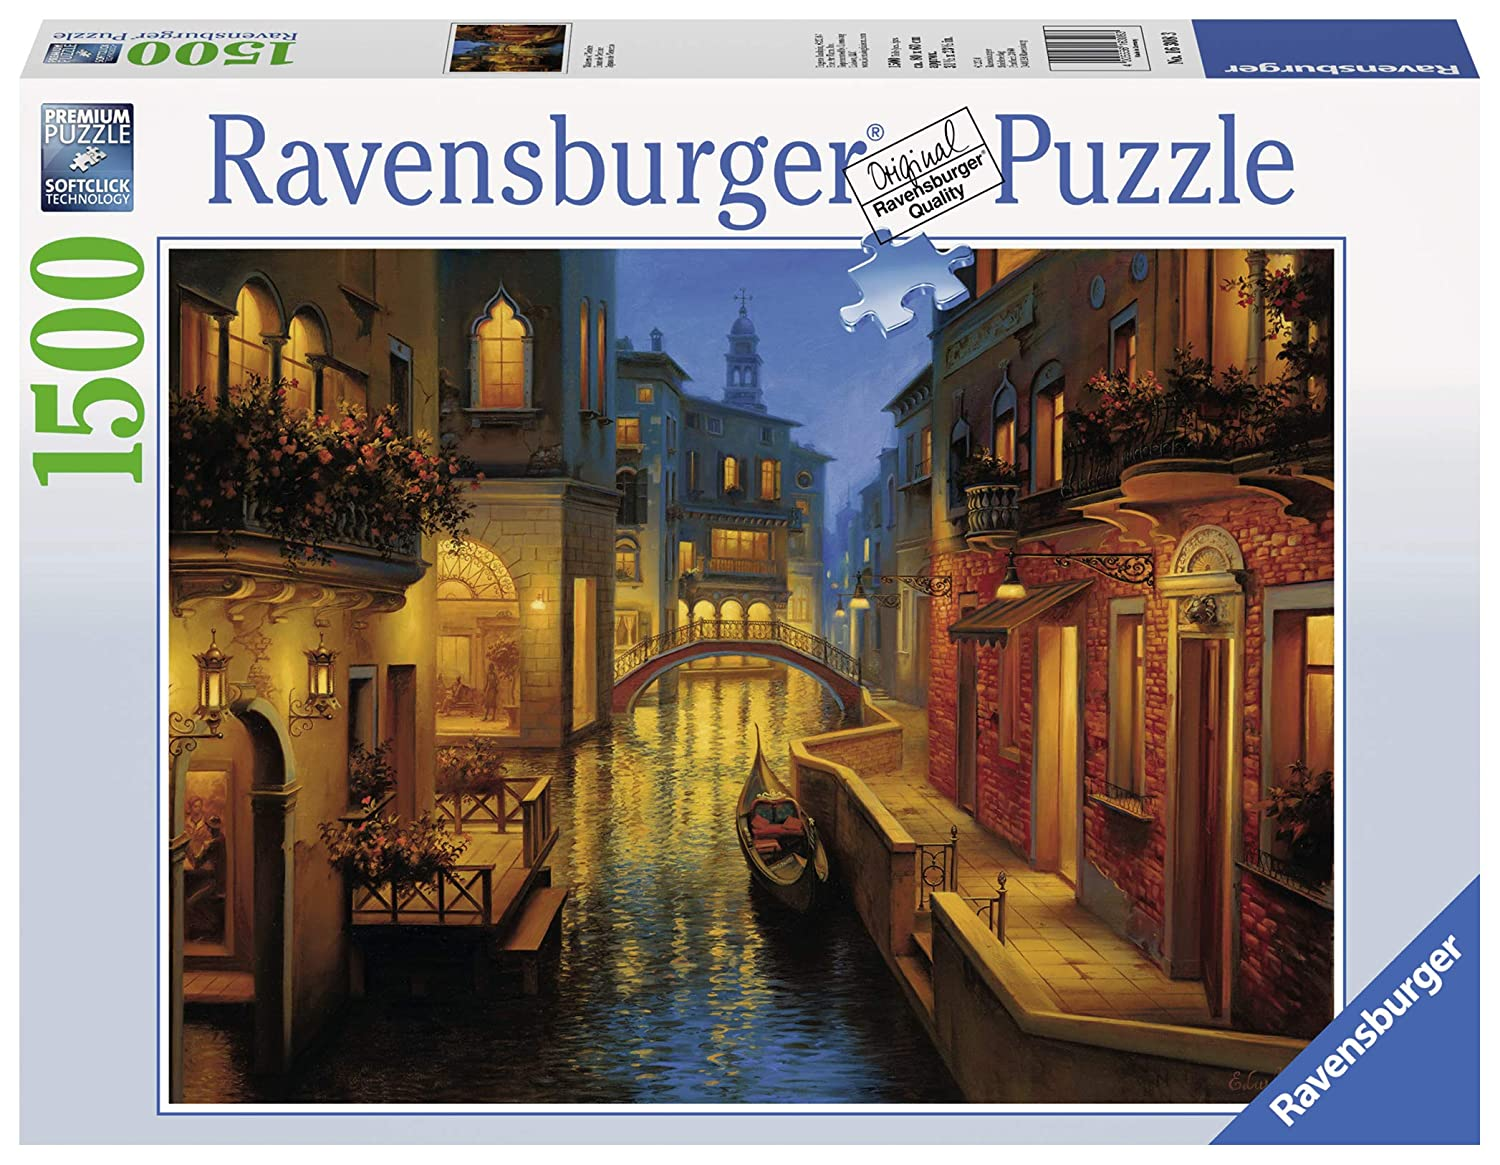 Ravensburger Waters of Venice 1500 Piece Jigsaw Puzzle for Adults – Softclick Technology Means Pieces Fit Together Perfectly